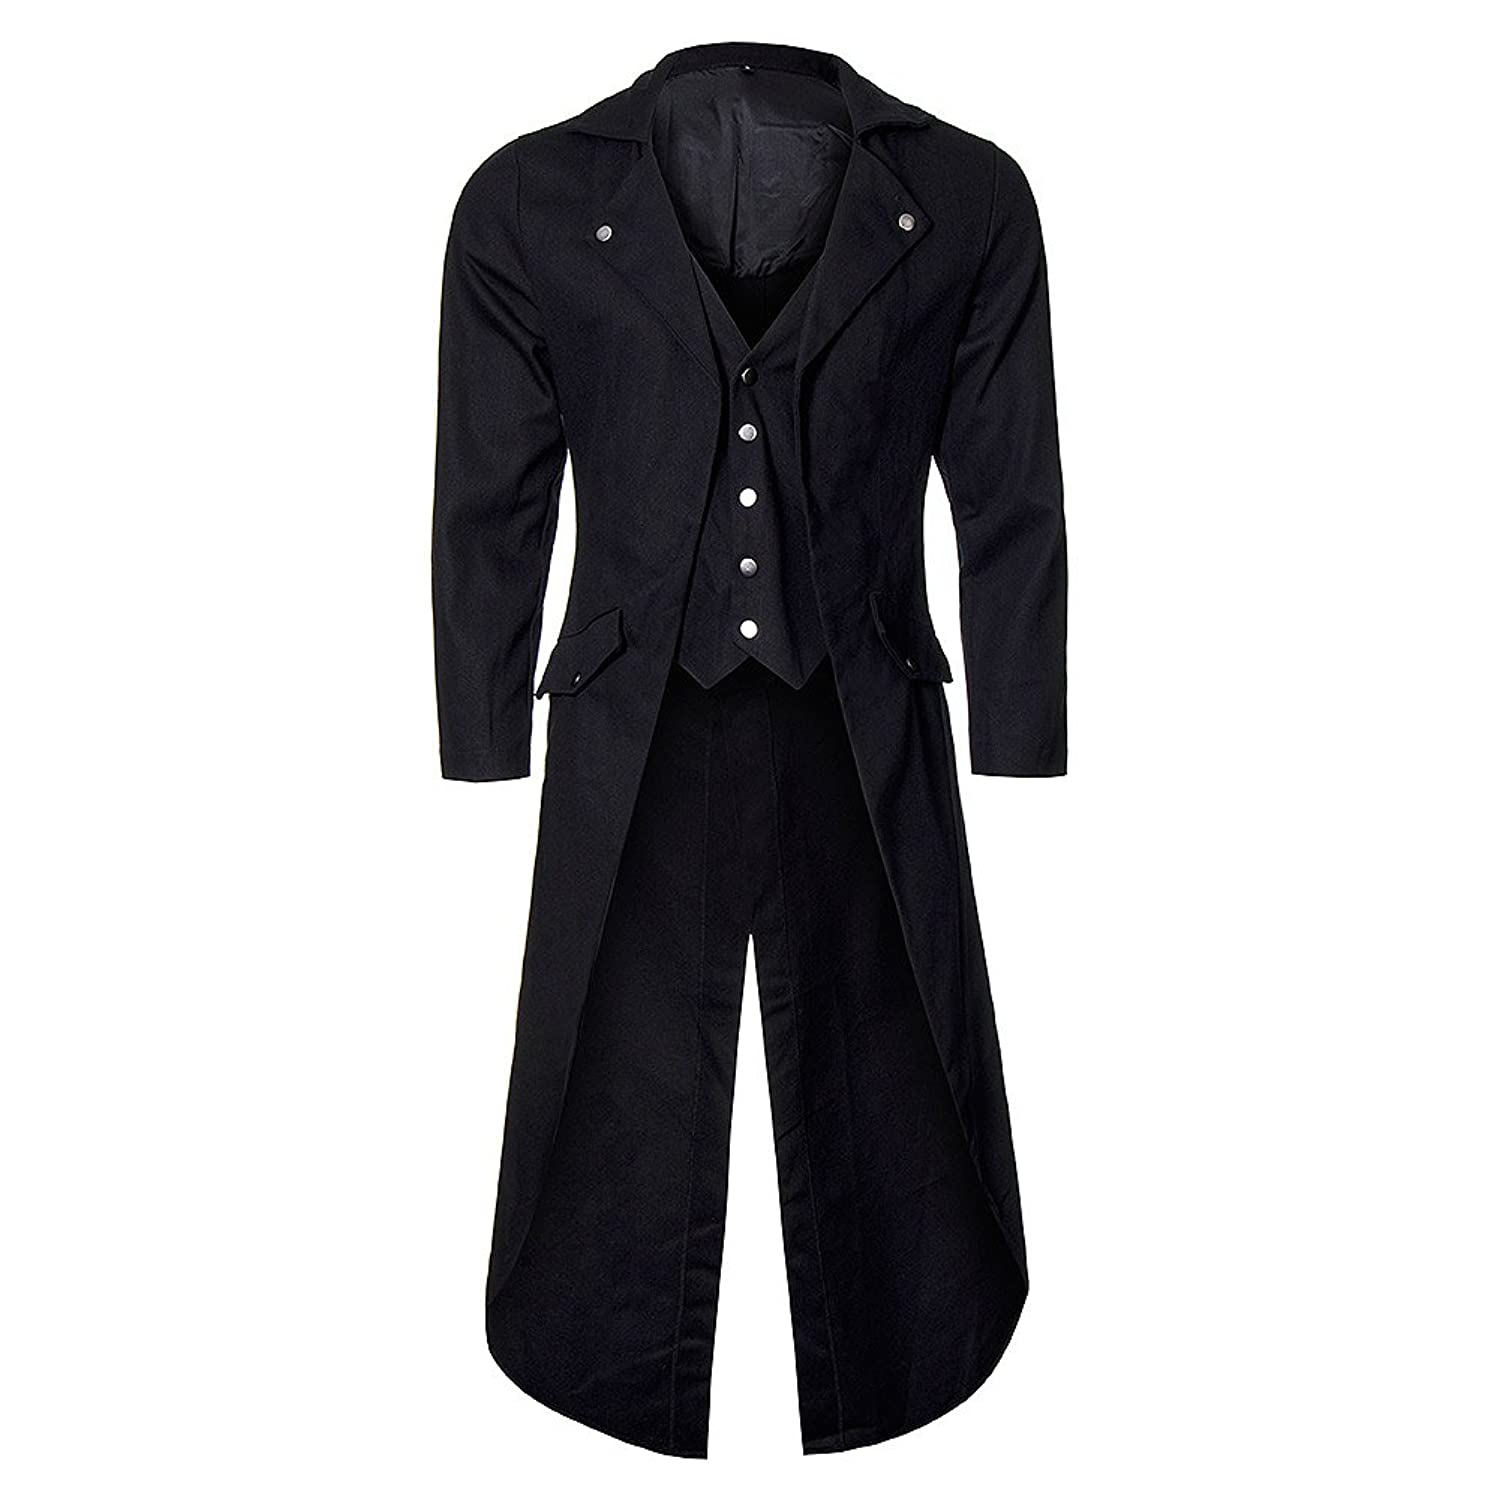 Steampunk Men's Coats Banned Unisex-adults Frock Tail Coat $99.16 AT vintagedancer.com